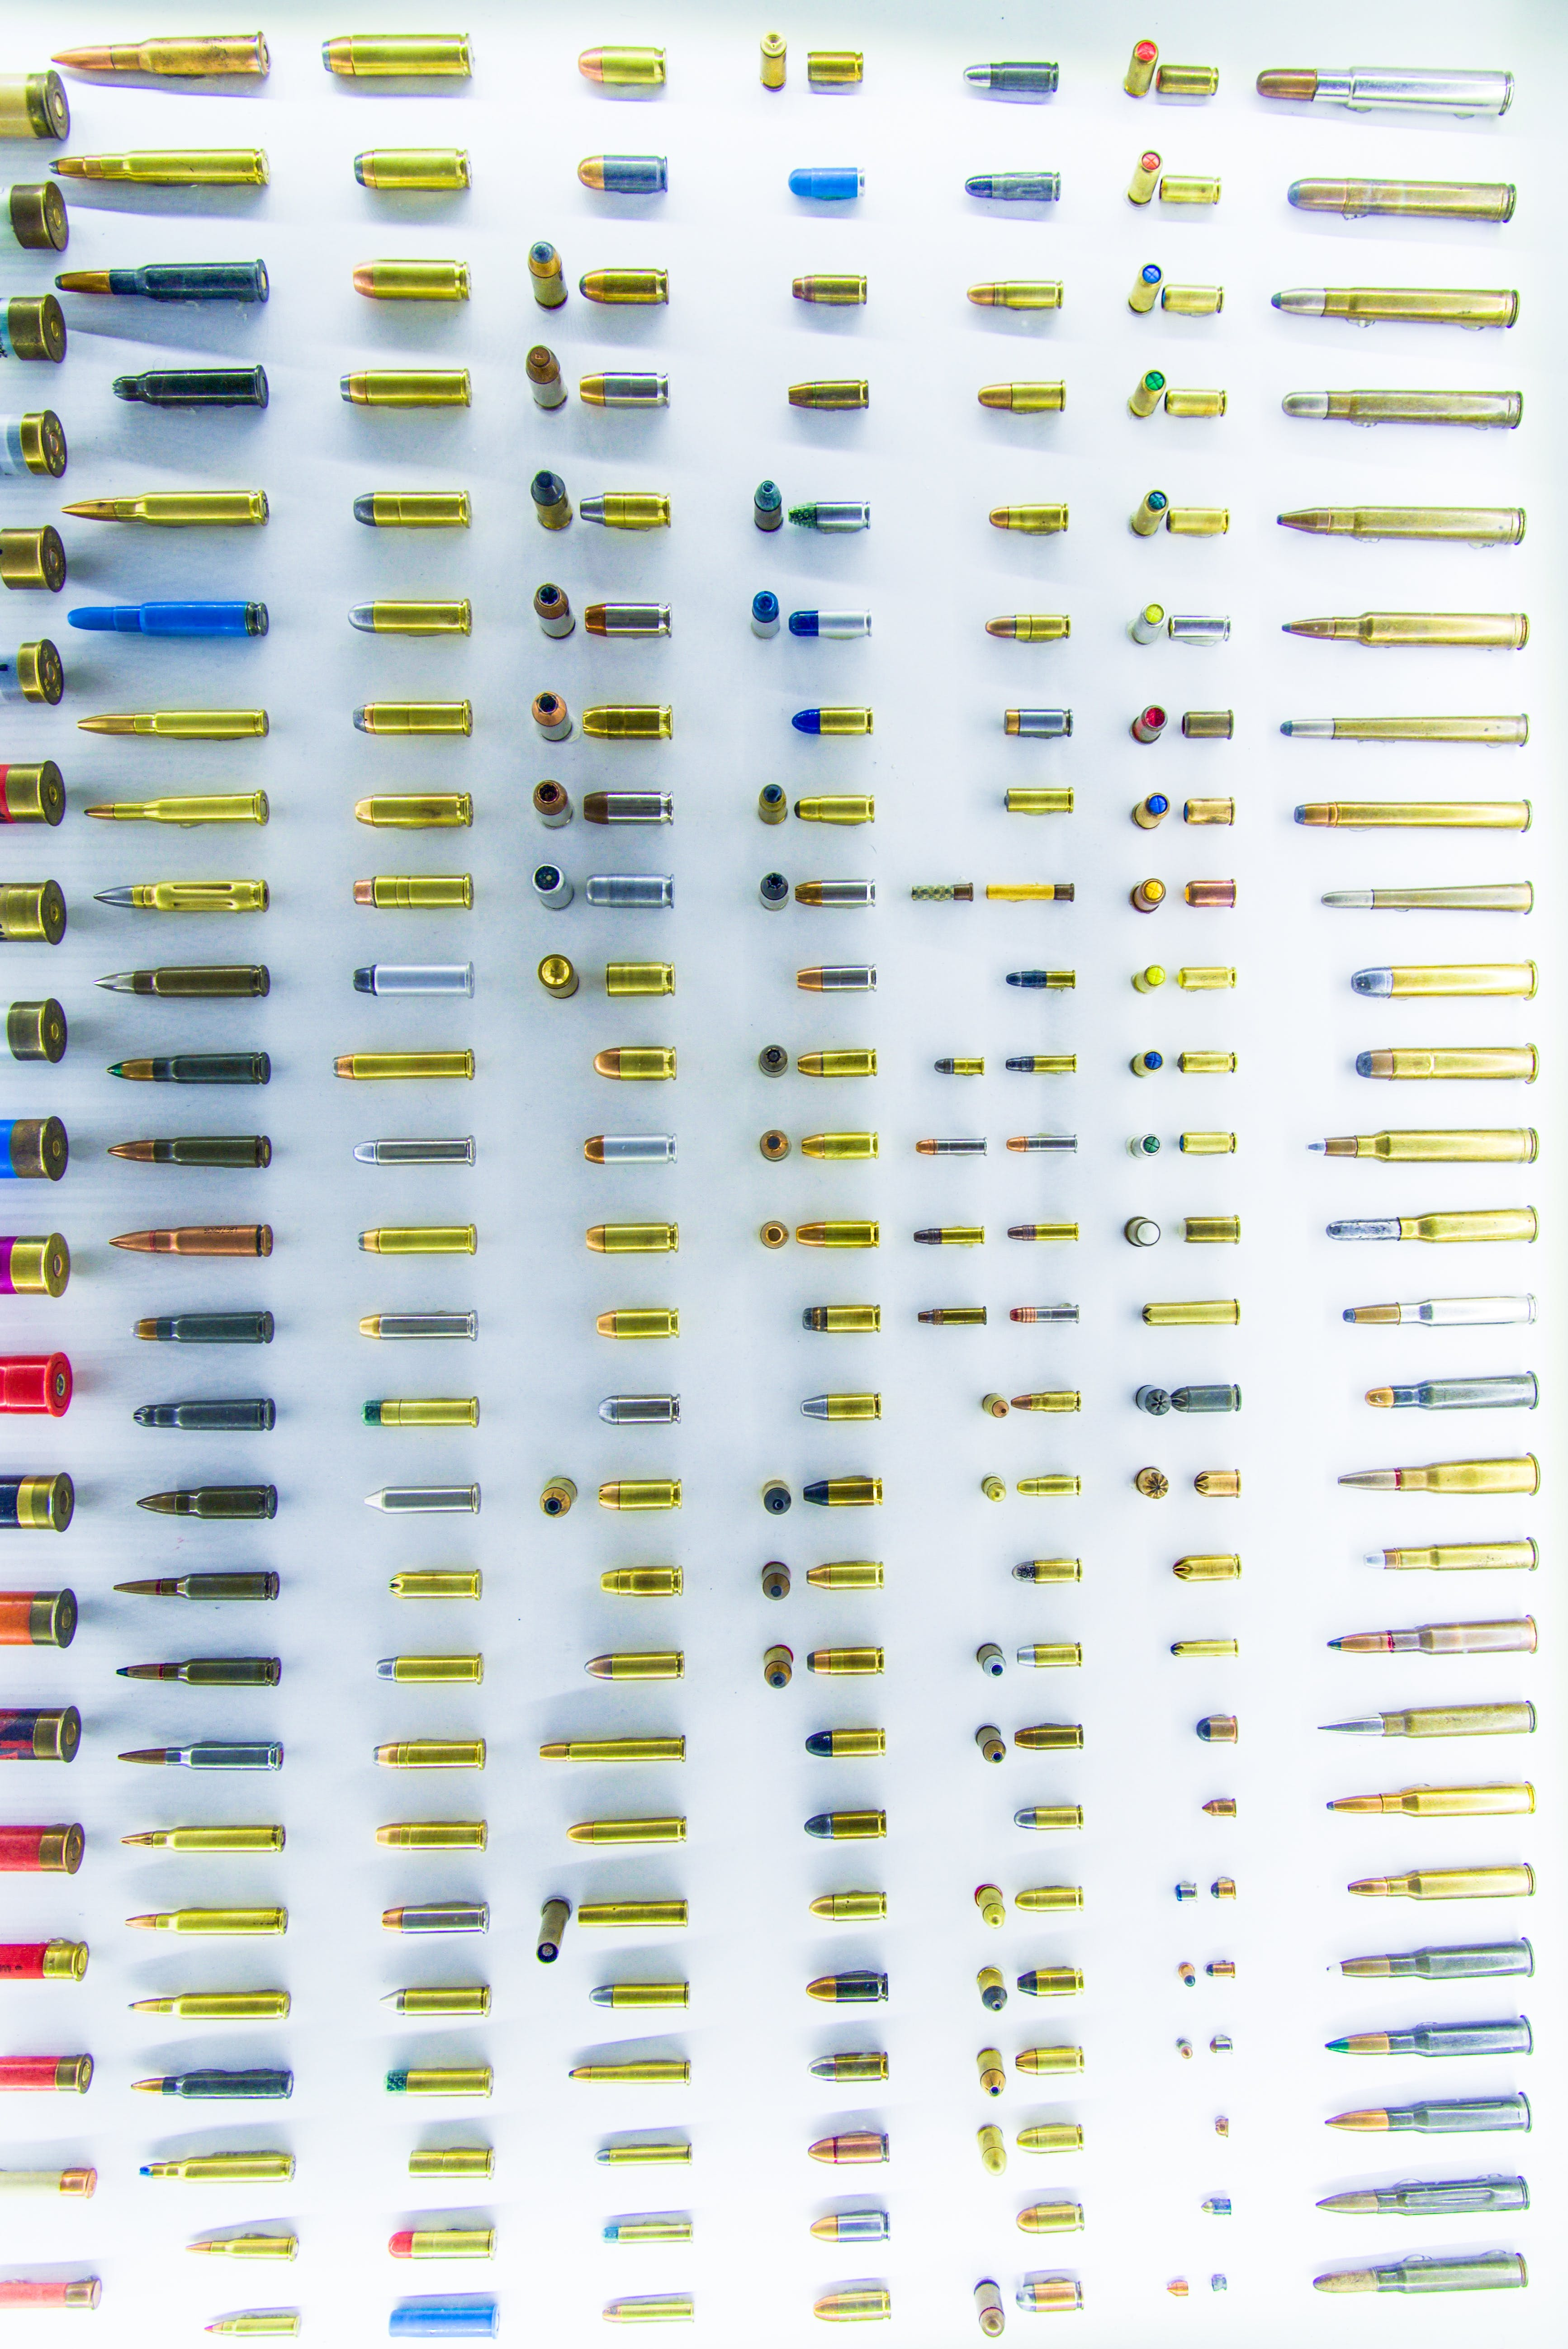 Bullet Collection on White Surface